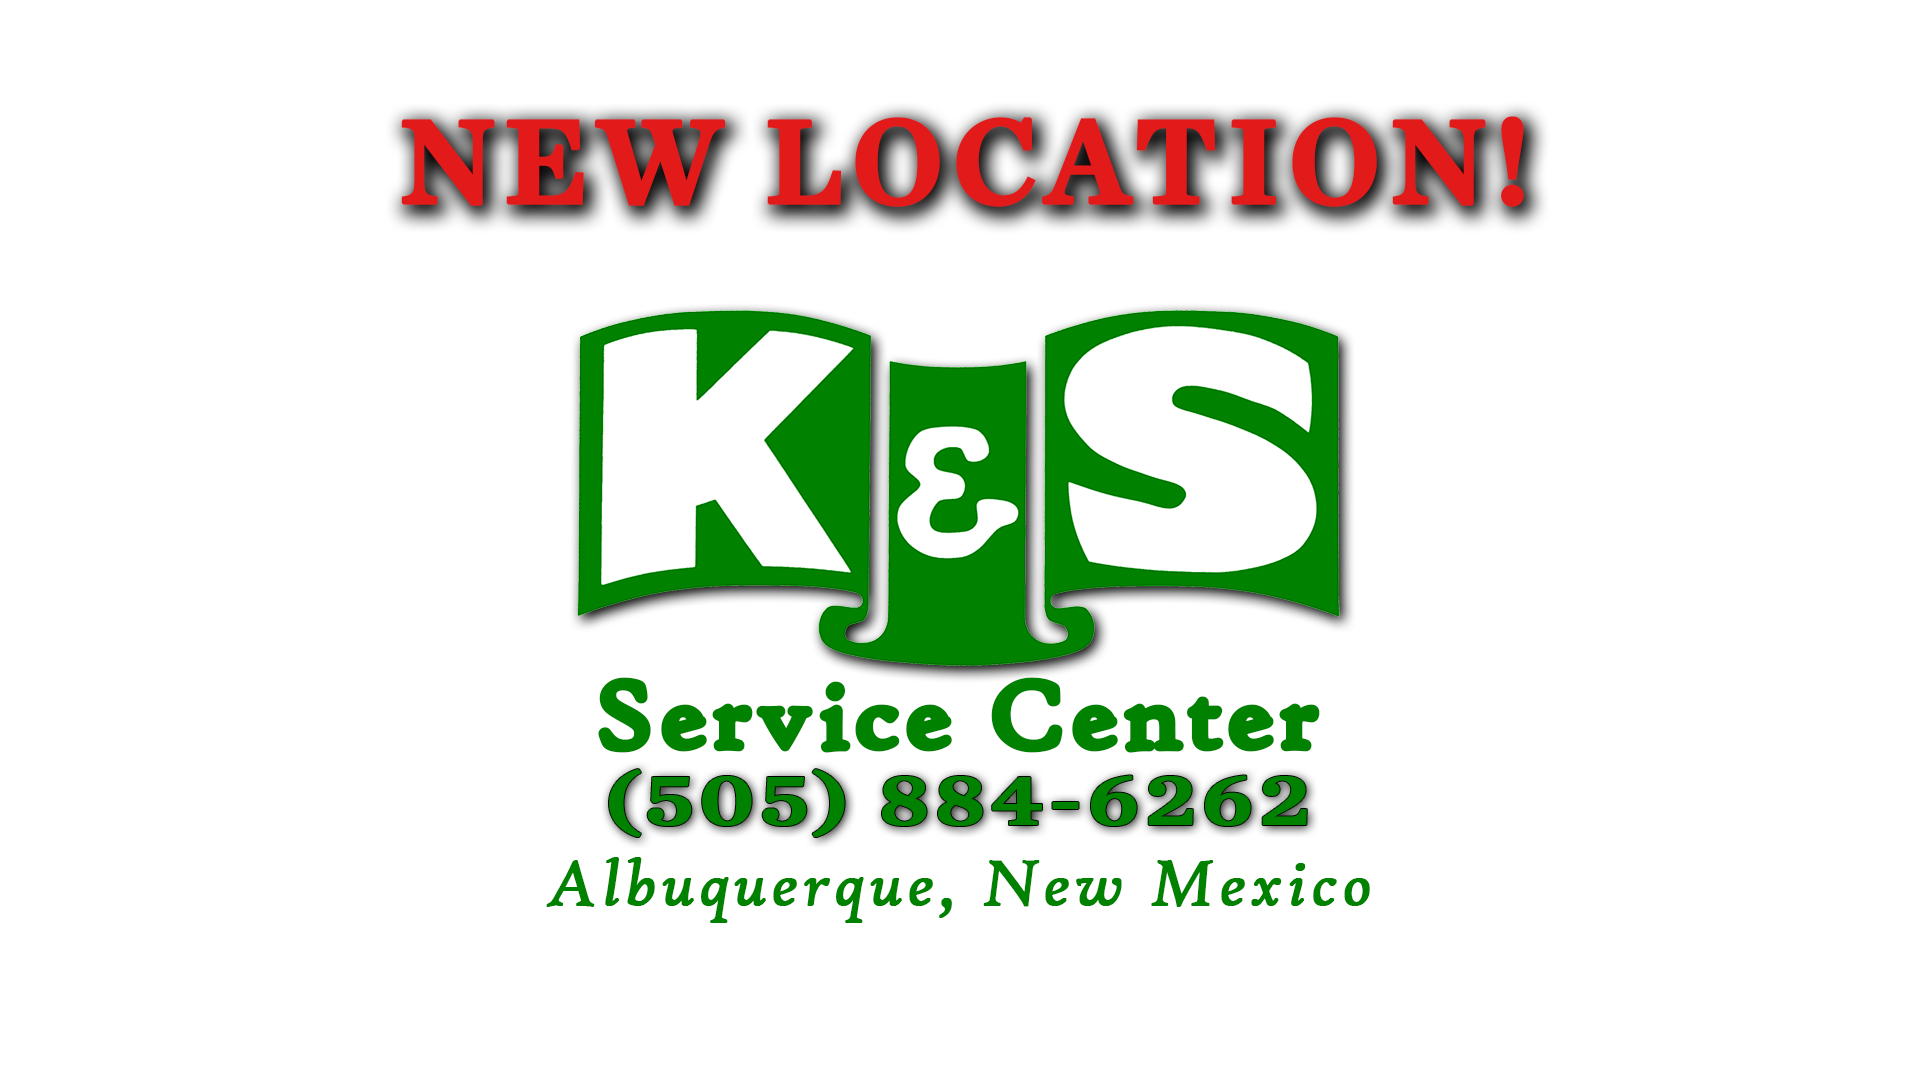 K &S Service Center of Albuquerque, New Mexico: Lowest prices on ...